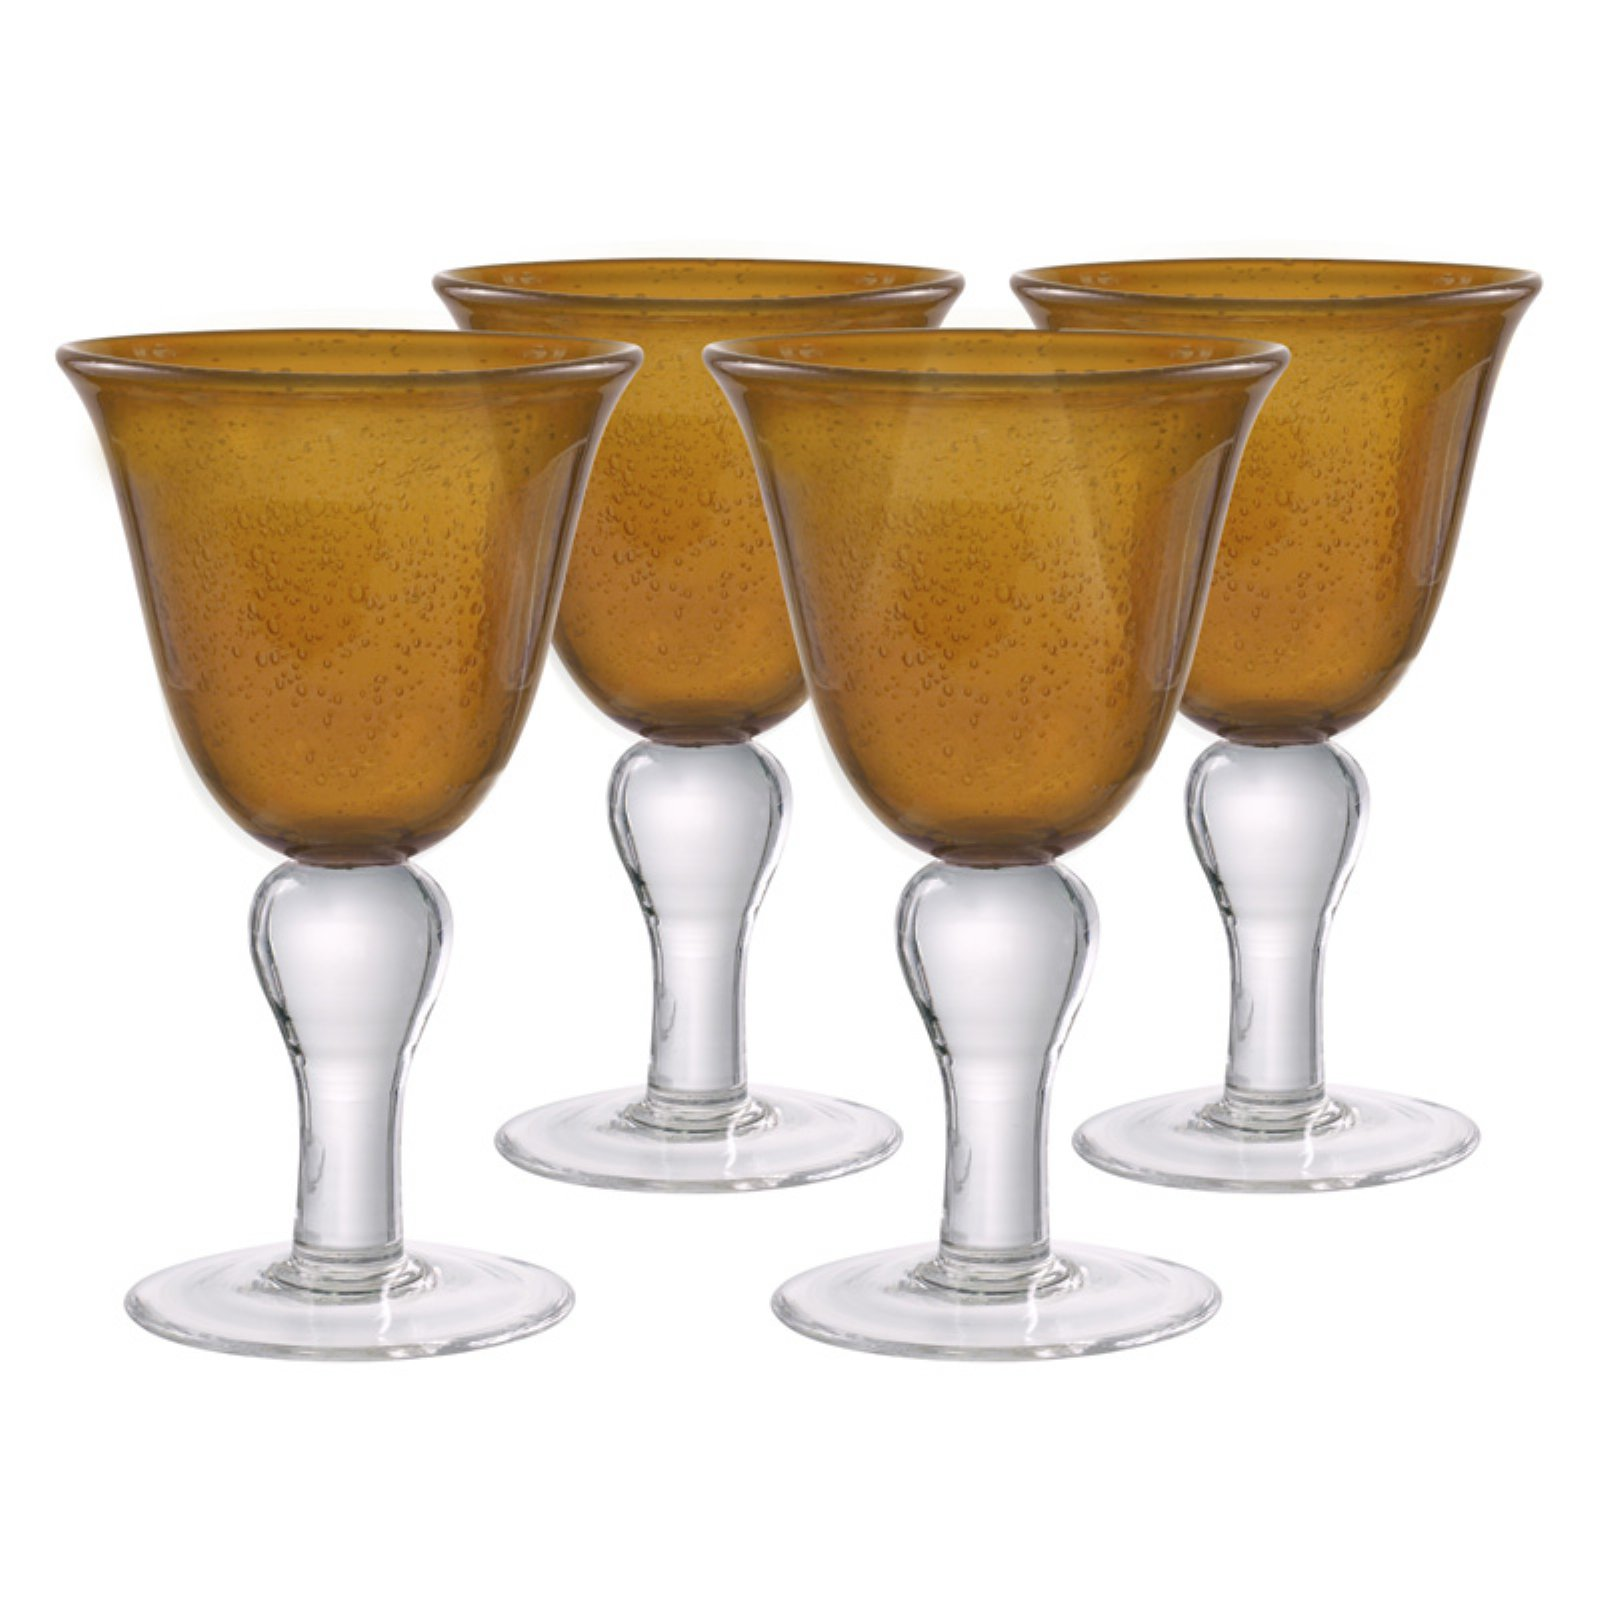 Artland Iris Wine Goblets - Set of 4